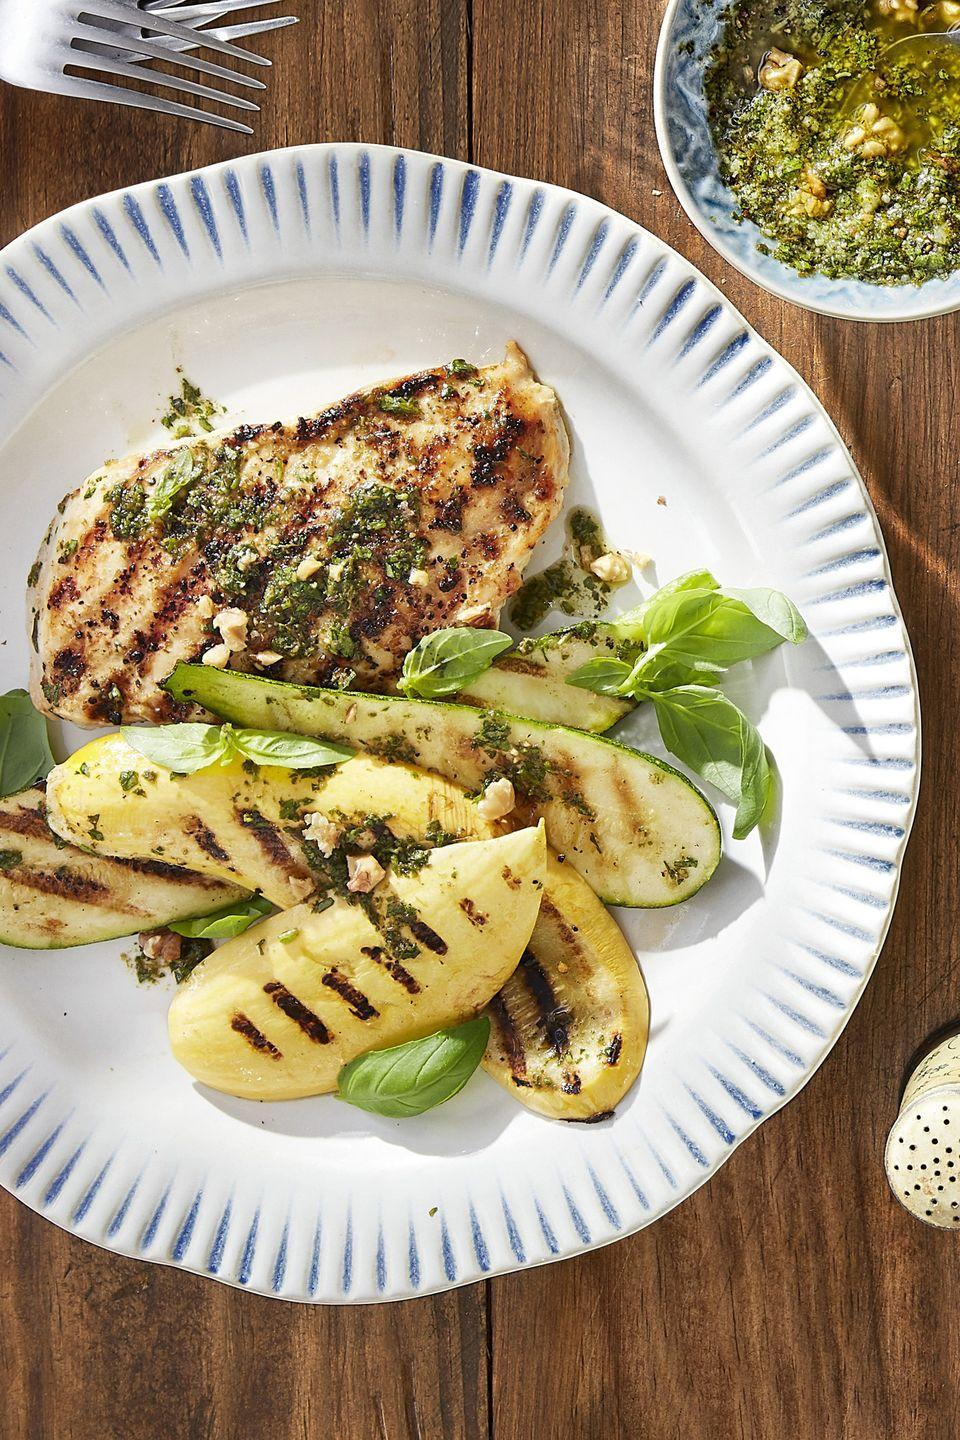 "<p>Fire up the grill for this pesto-glazed chicken and squash recipe.</p><p><strong><a href=""https://www.countryliving.com/food-drinks/recipes/a44227/grilled-pesto-chicken-summer-squash-recipe/"" rel=""nofollow noopener"" target=""_blank"" data-ylk=""slk:Get the recipe"" class=""link rapid-noclick-resp"">Get the recipe</a>. </strong></p>"